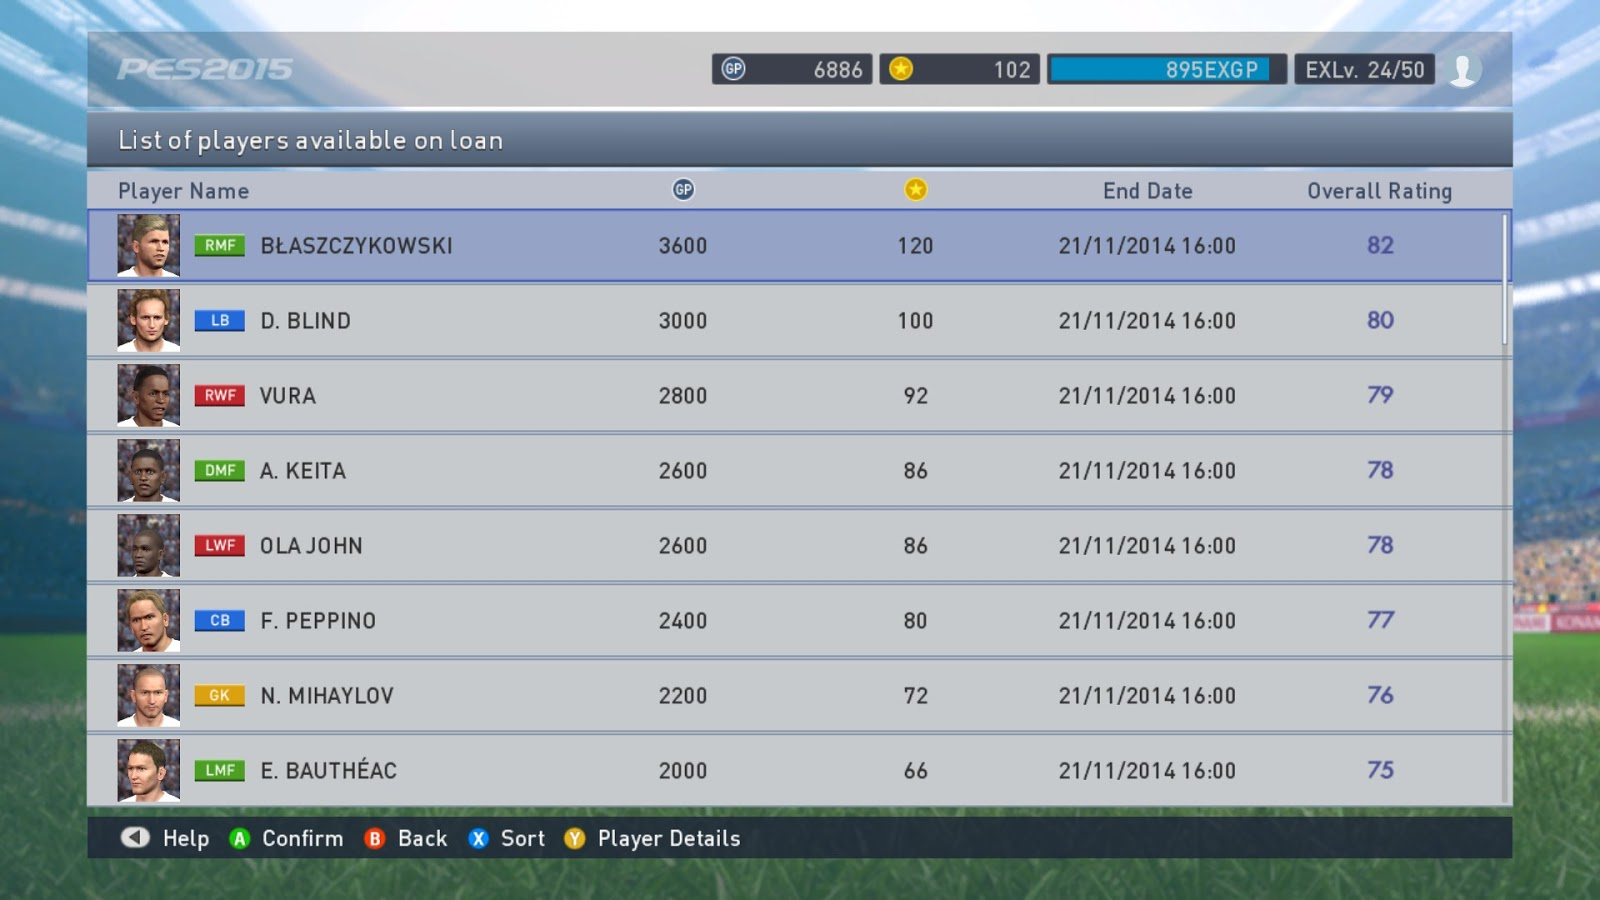 pes myclub coin prices revealed pesedit blog another way to spend the pes 2015 myclub coins is to sign new managers for your team managers in pes 2015 myclub have different management skills and